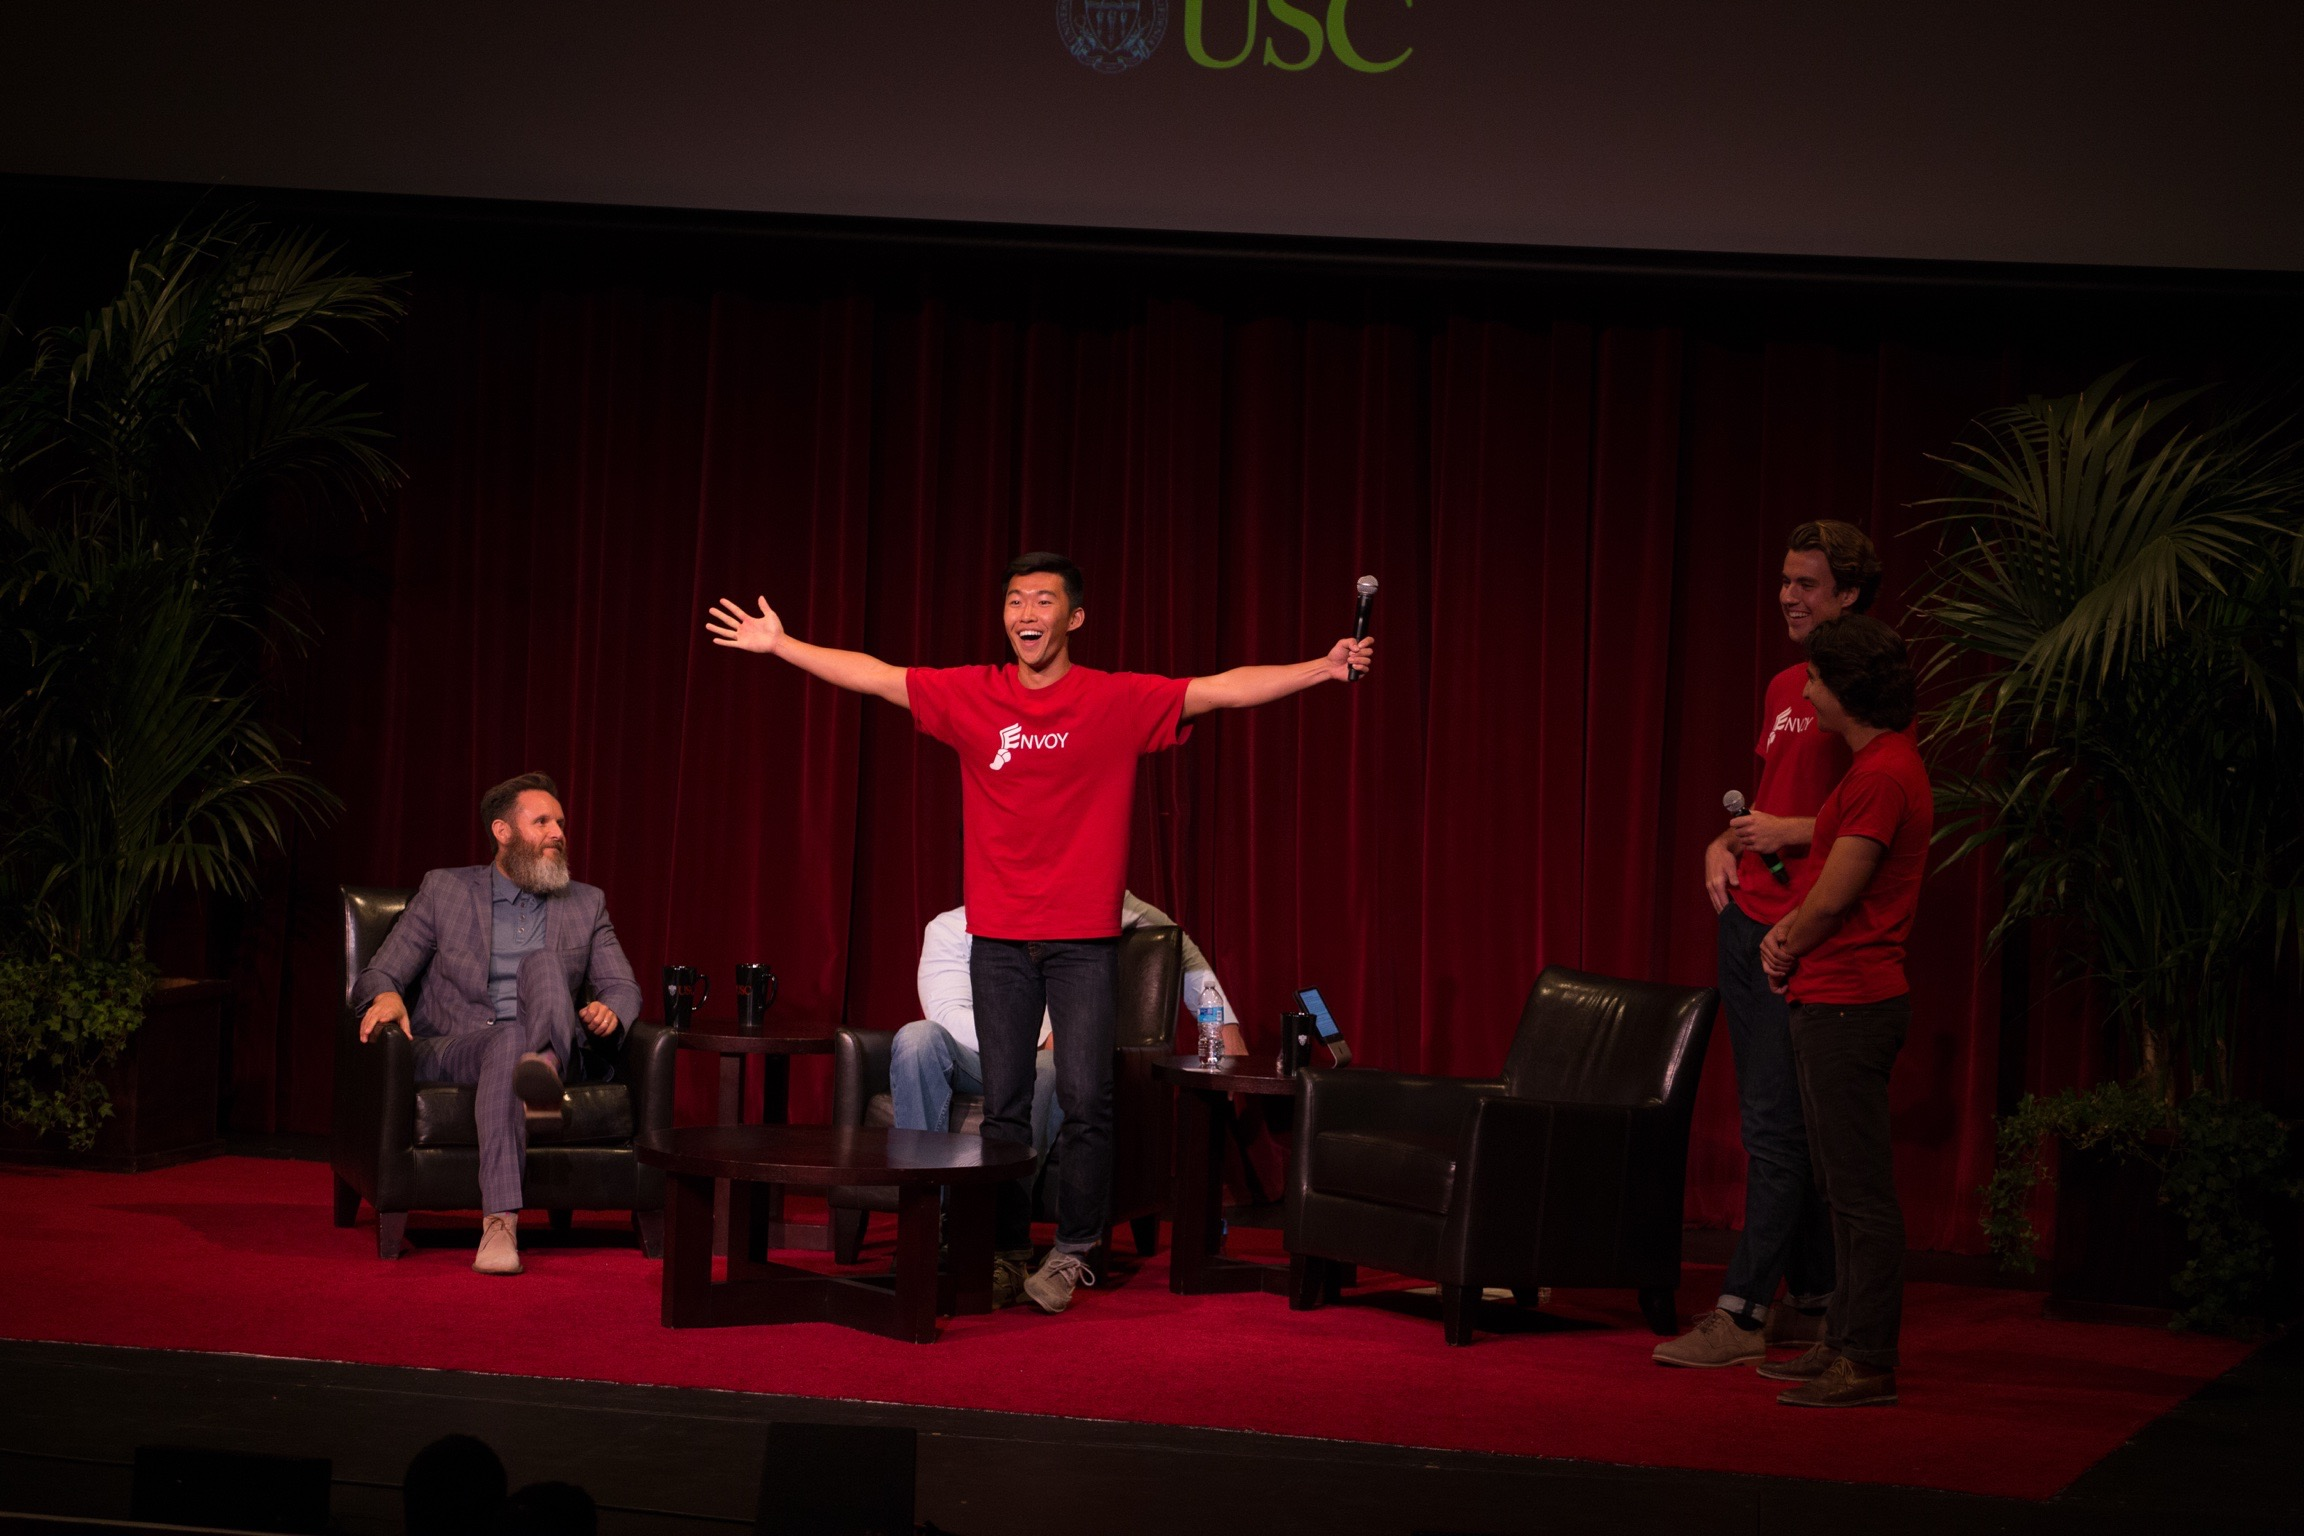 EnvoyNow founder Anthony Zhang on stage at a Shark Tank event on campus.